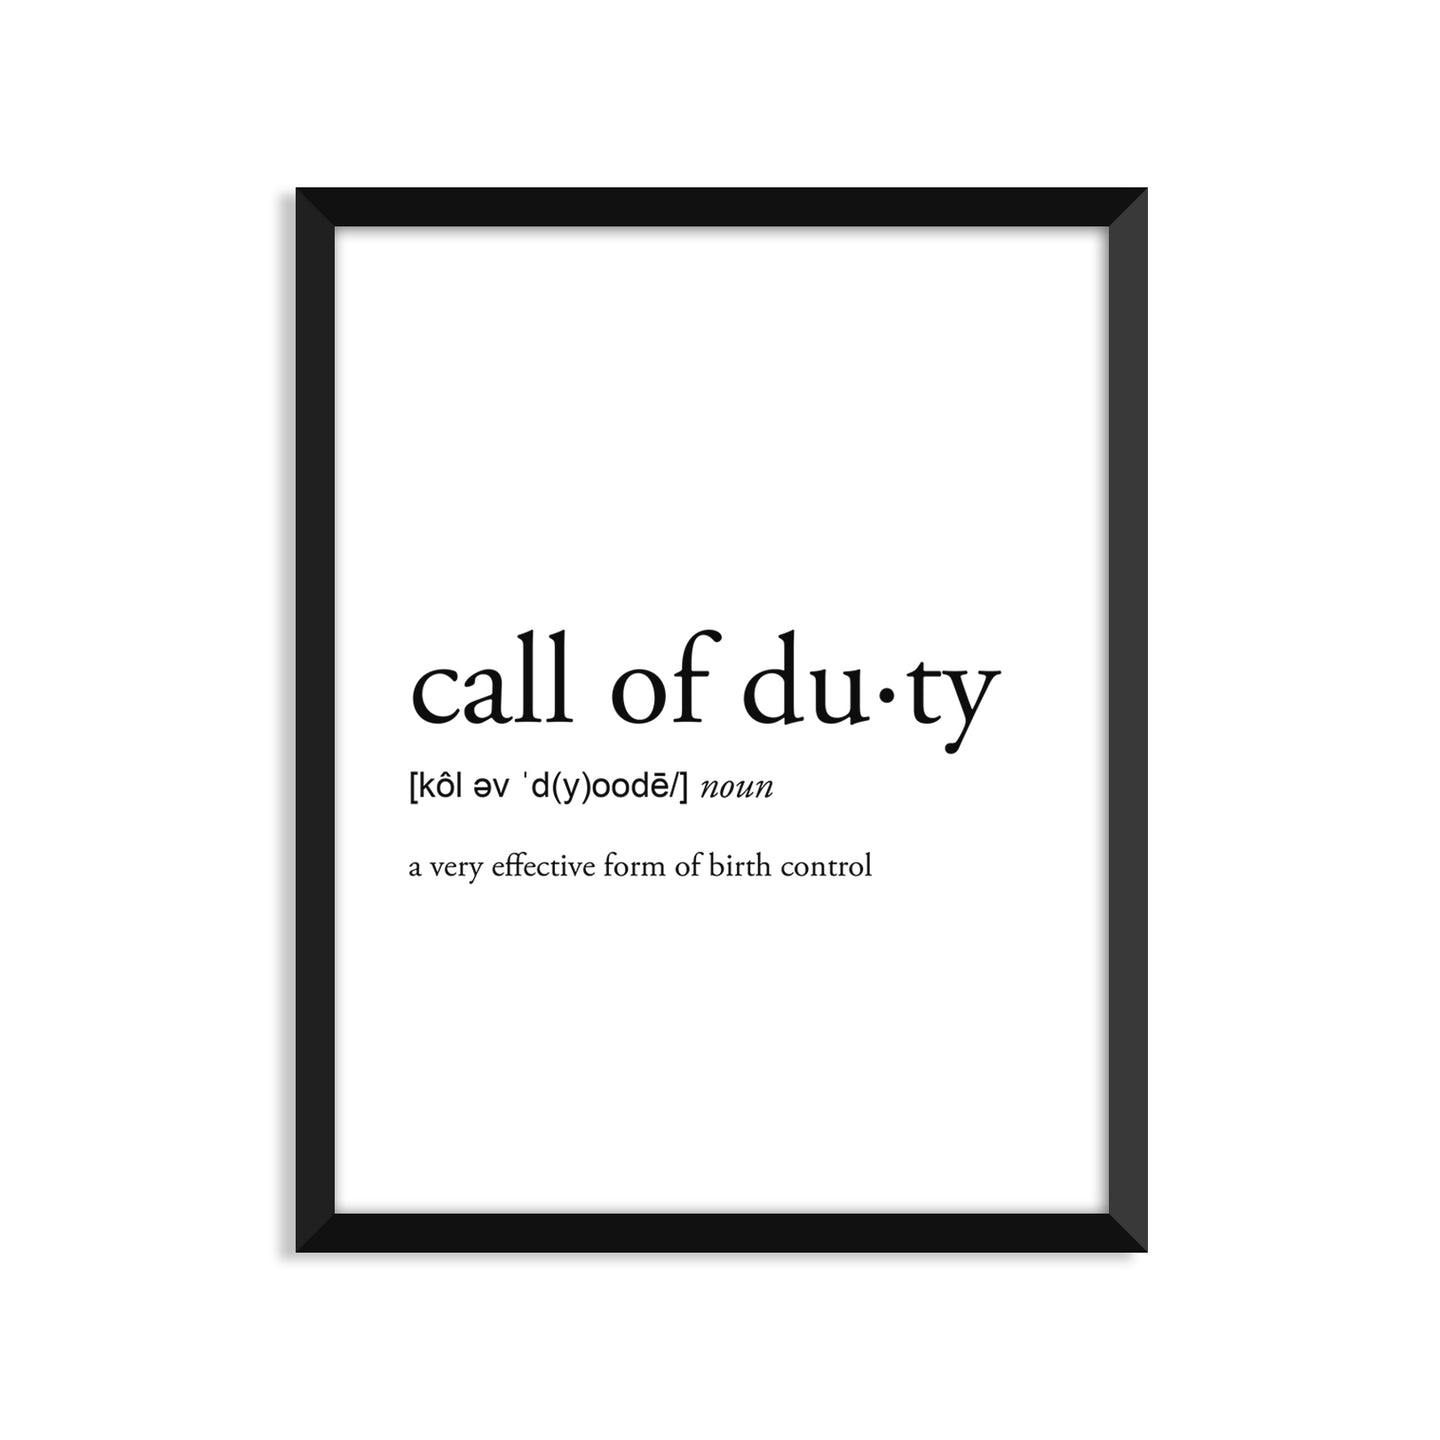 Call Of Duty definition art print or greeting card